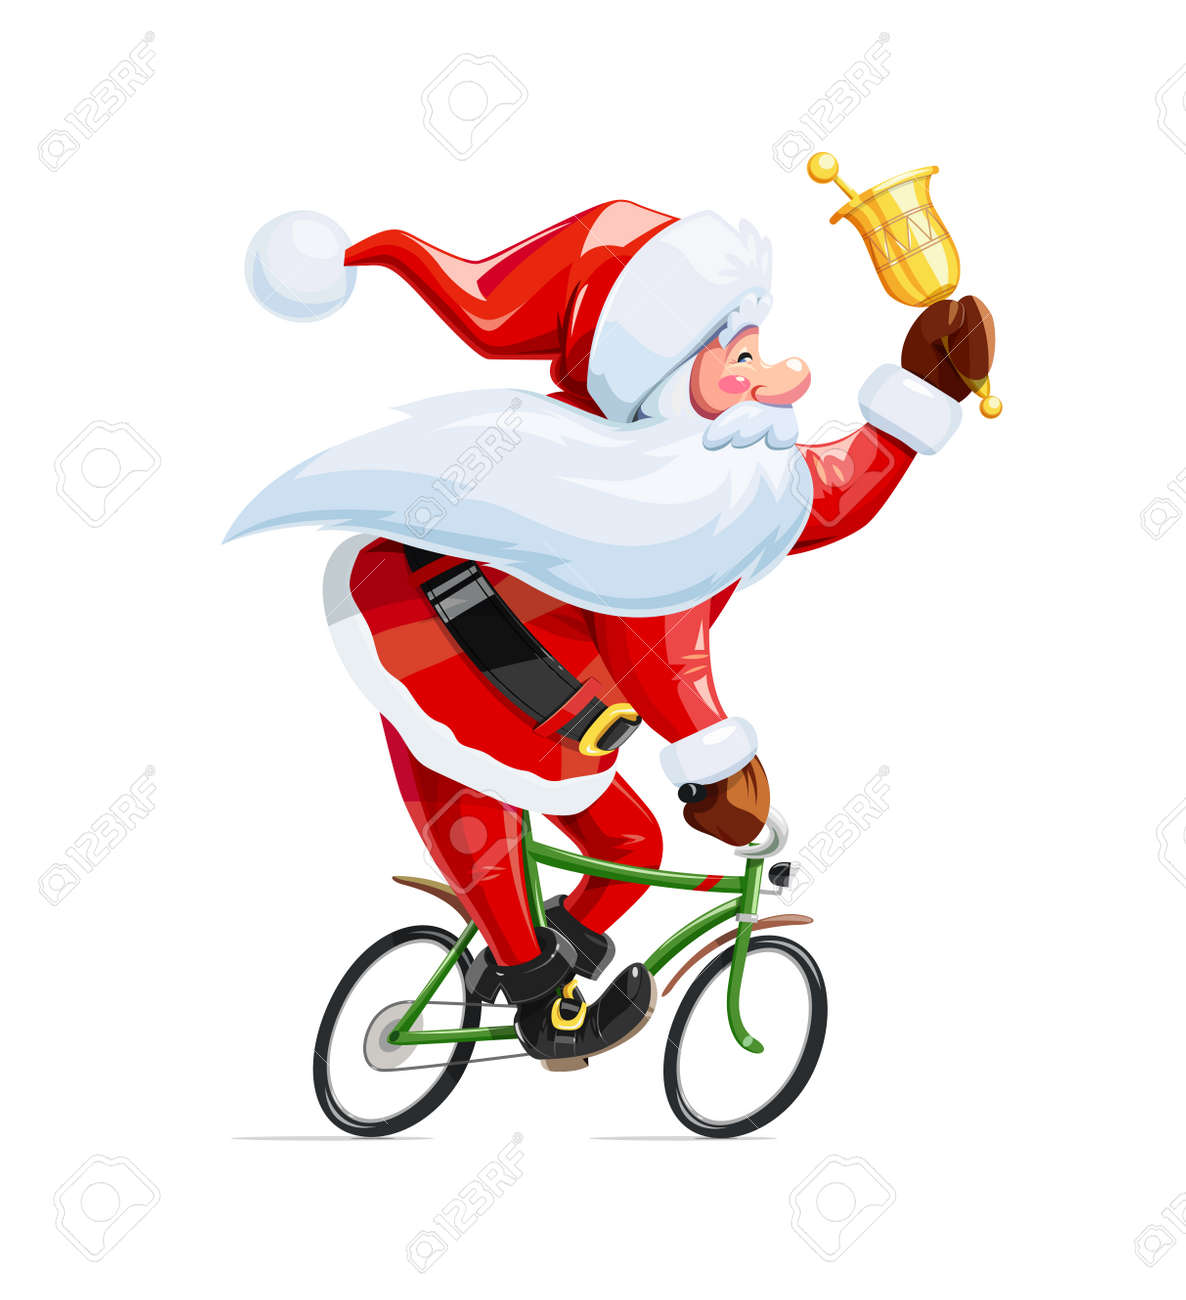 Santa claus with bell at bicycle. Christmas cartoon character. Old-man drive cycle to new year celebration. Winter holiday. - 81129916